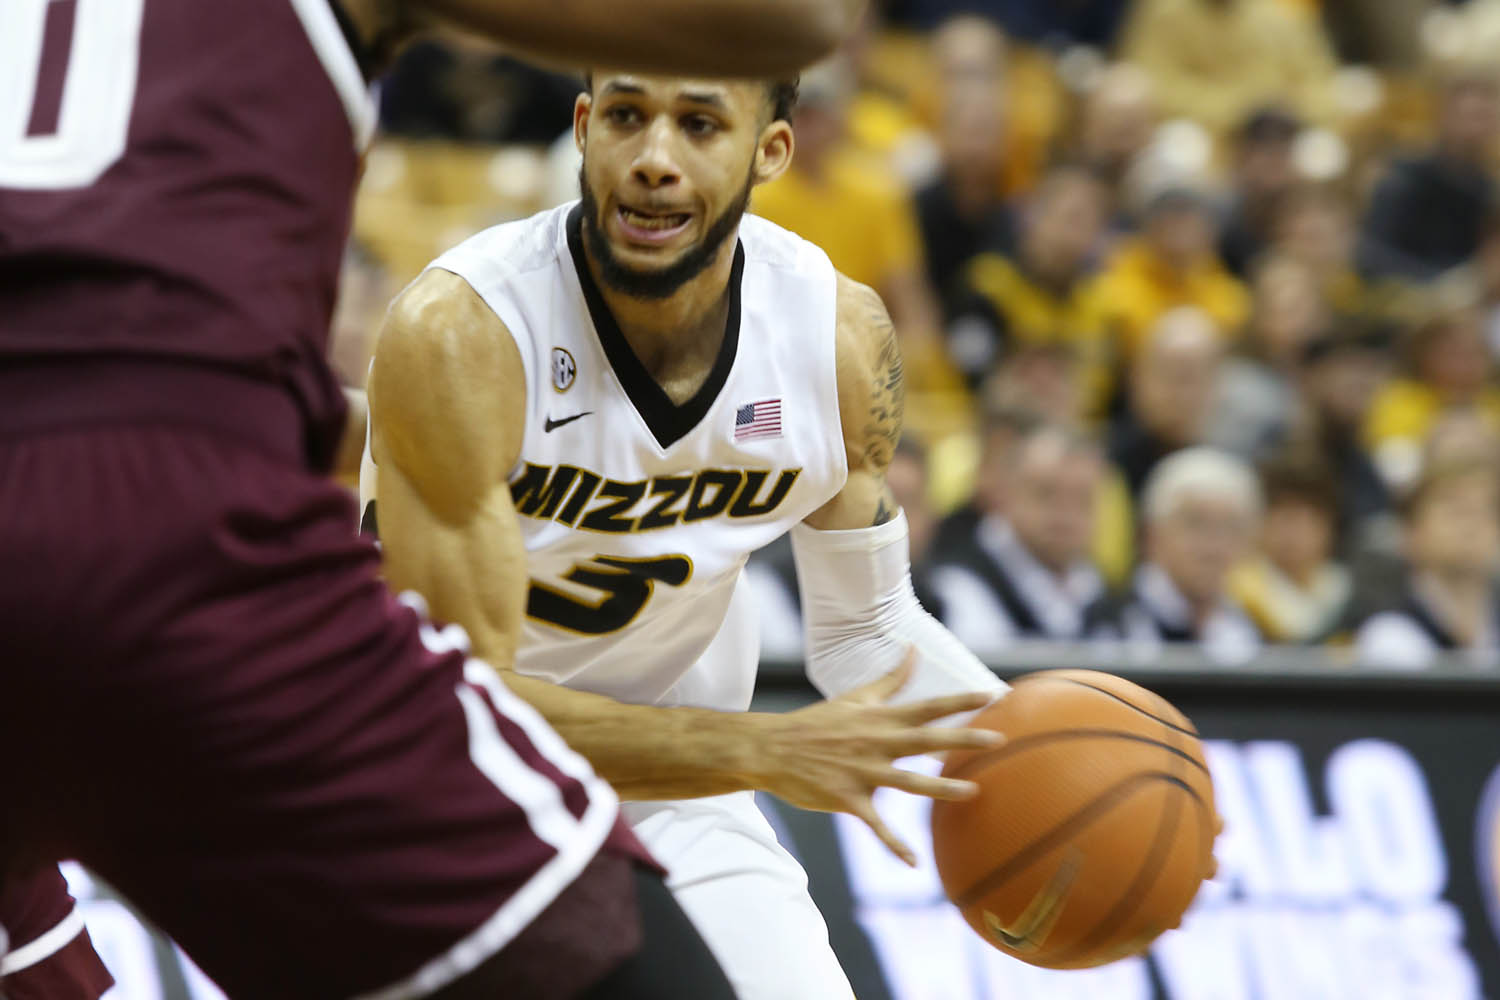 Guard Kassius Robertson dribbles the ball down the court.